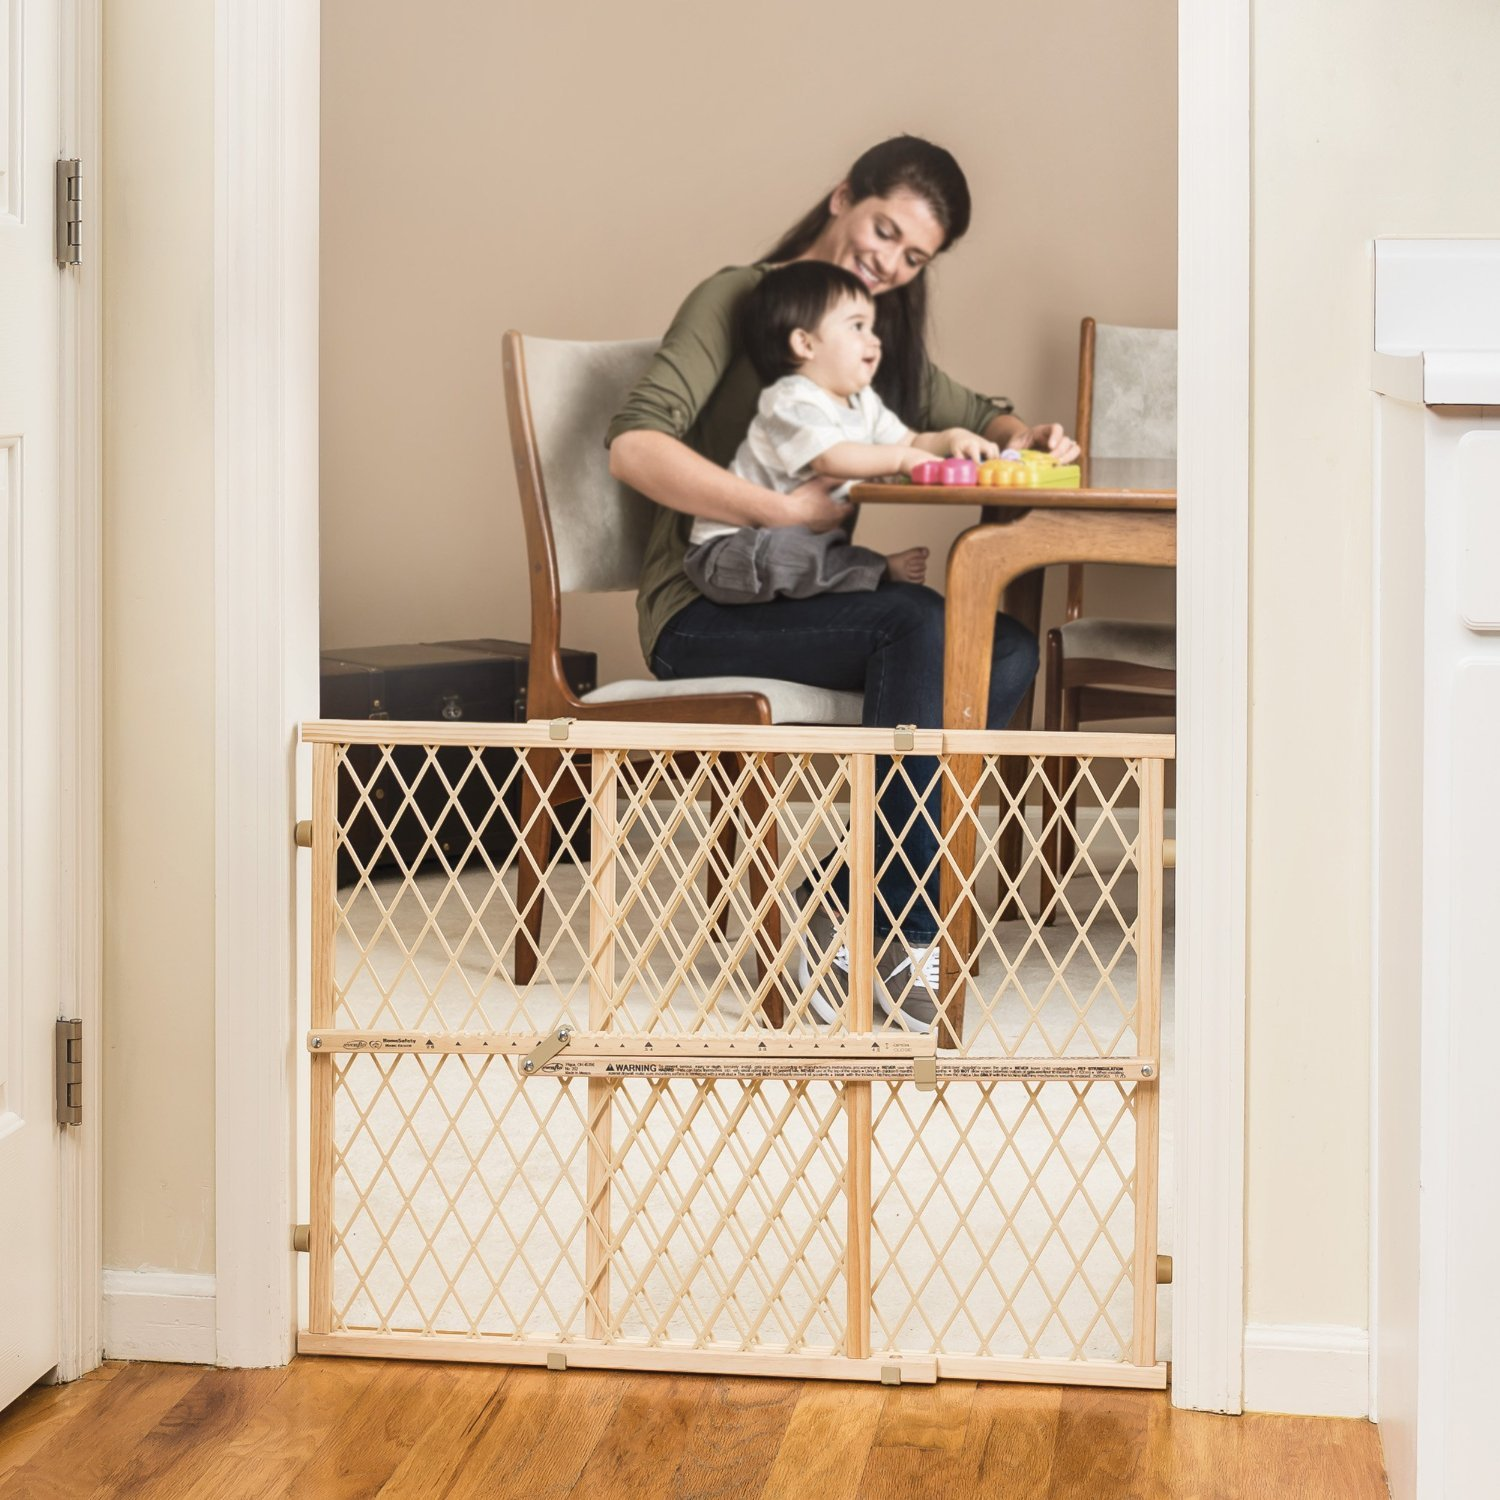 Amazon Com Evenflo Safety Baby Gate Adjustable Extra Wide And